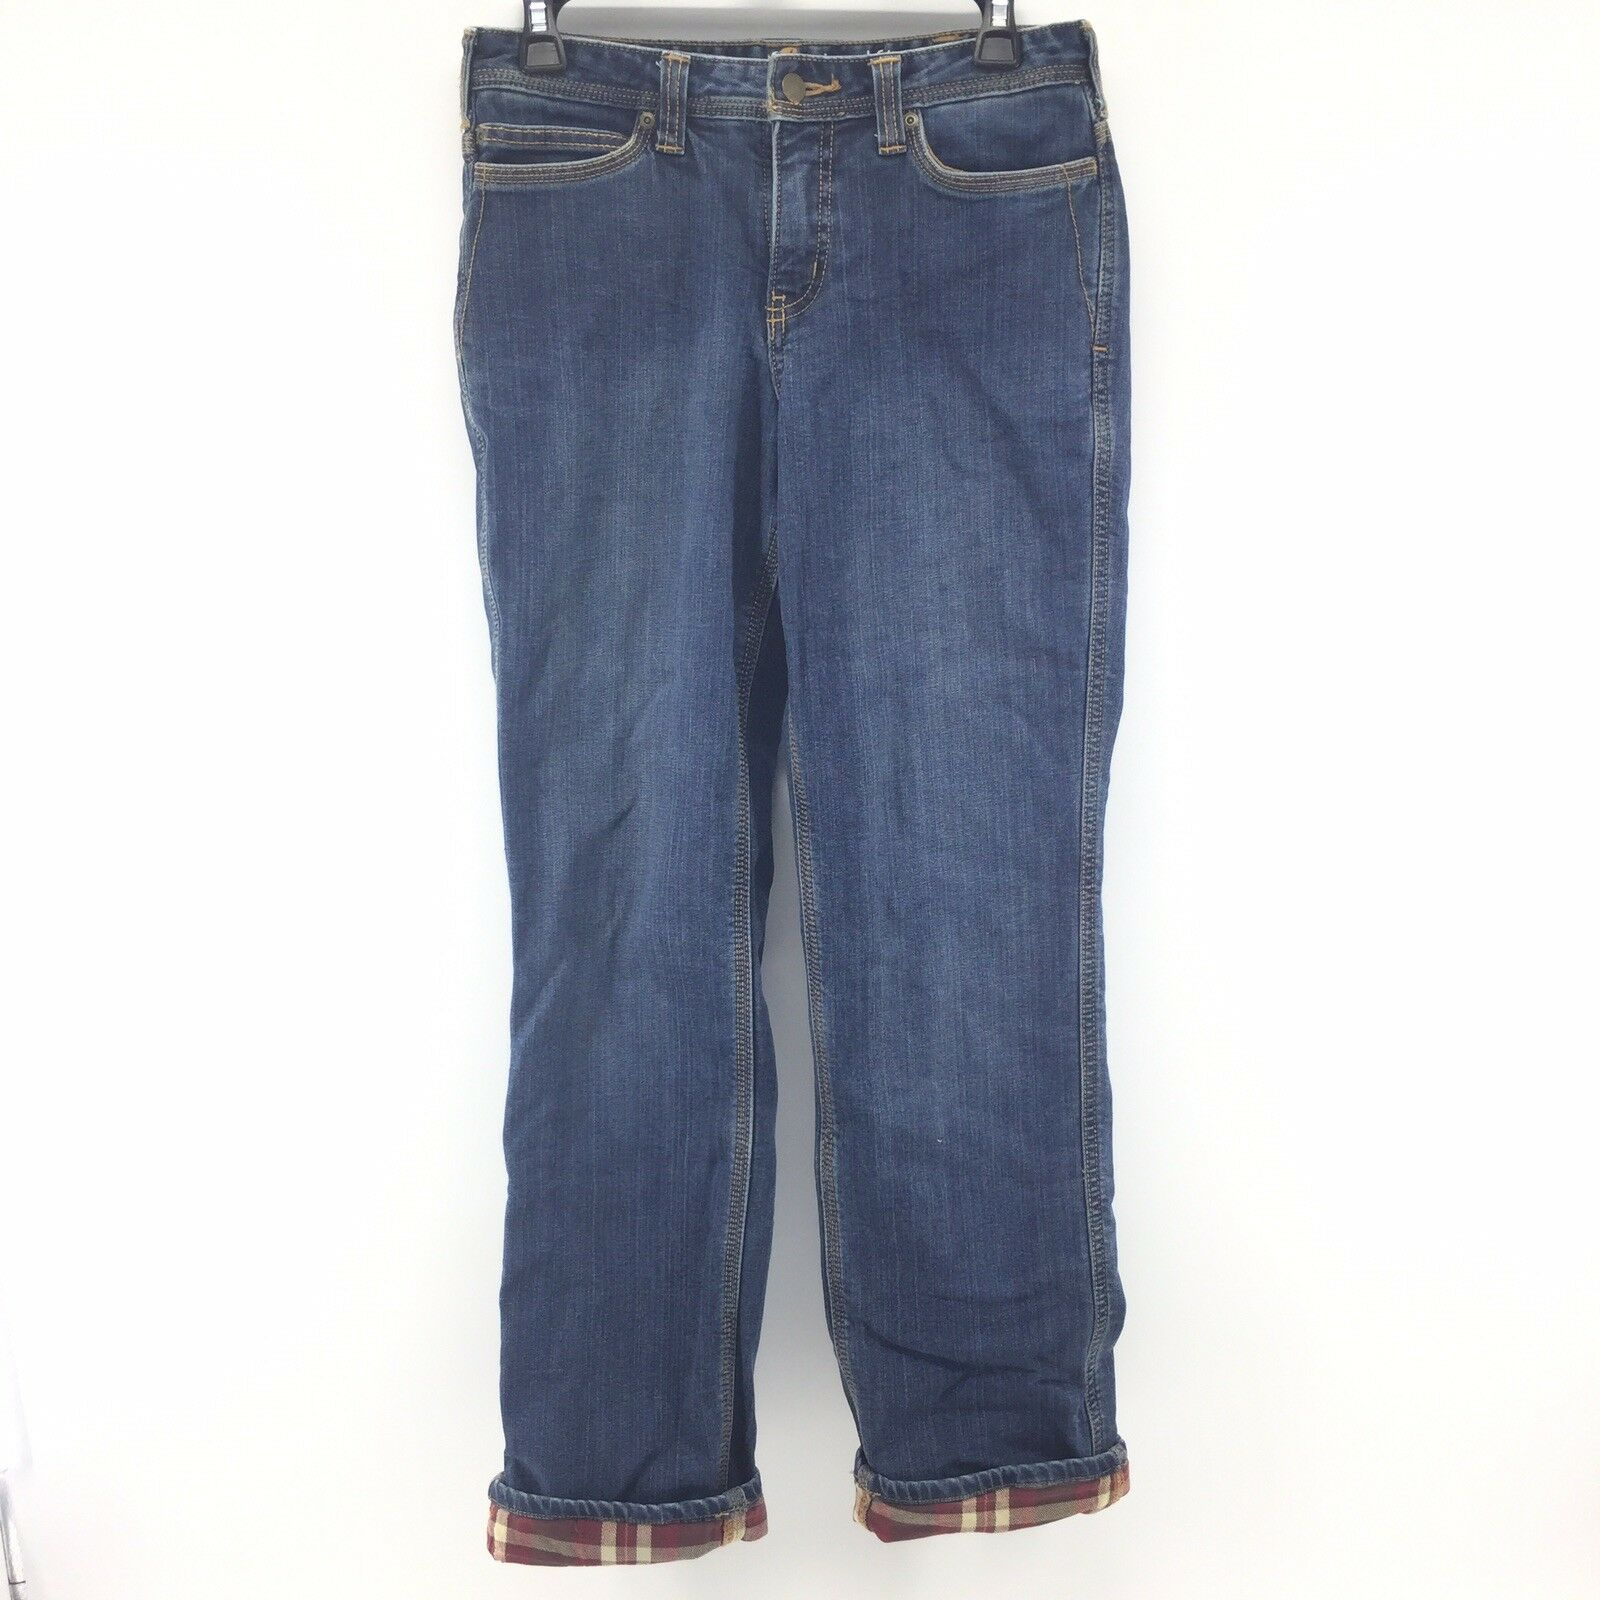 Carhartt Relaxed Fit Straight Leg Jeans Womens Size 4 Insulated Plaid Lined I5A